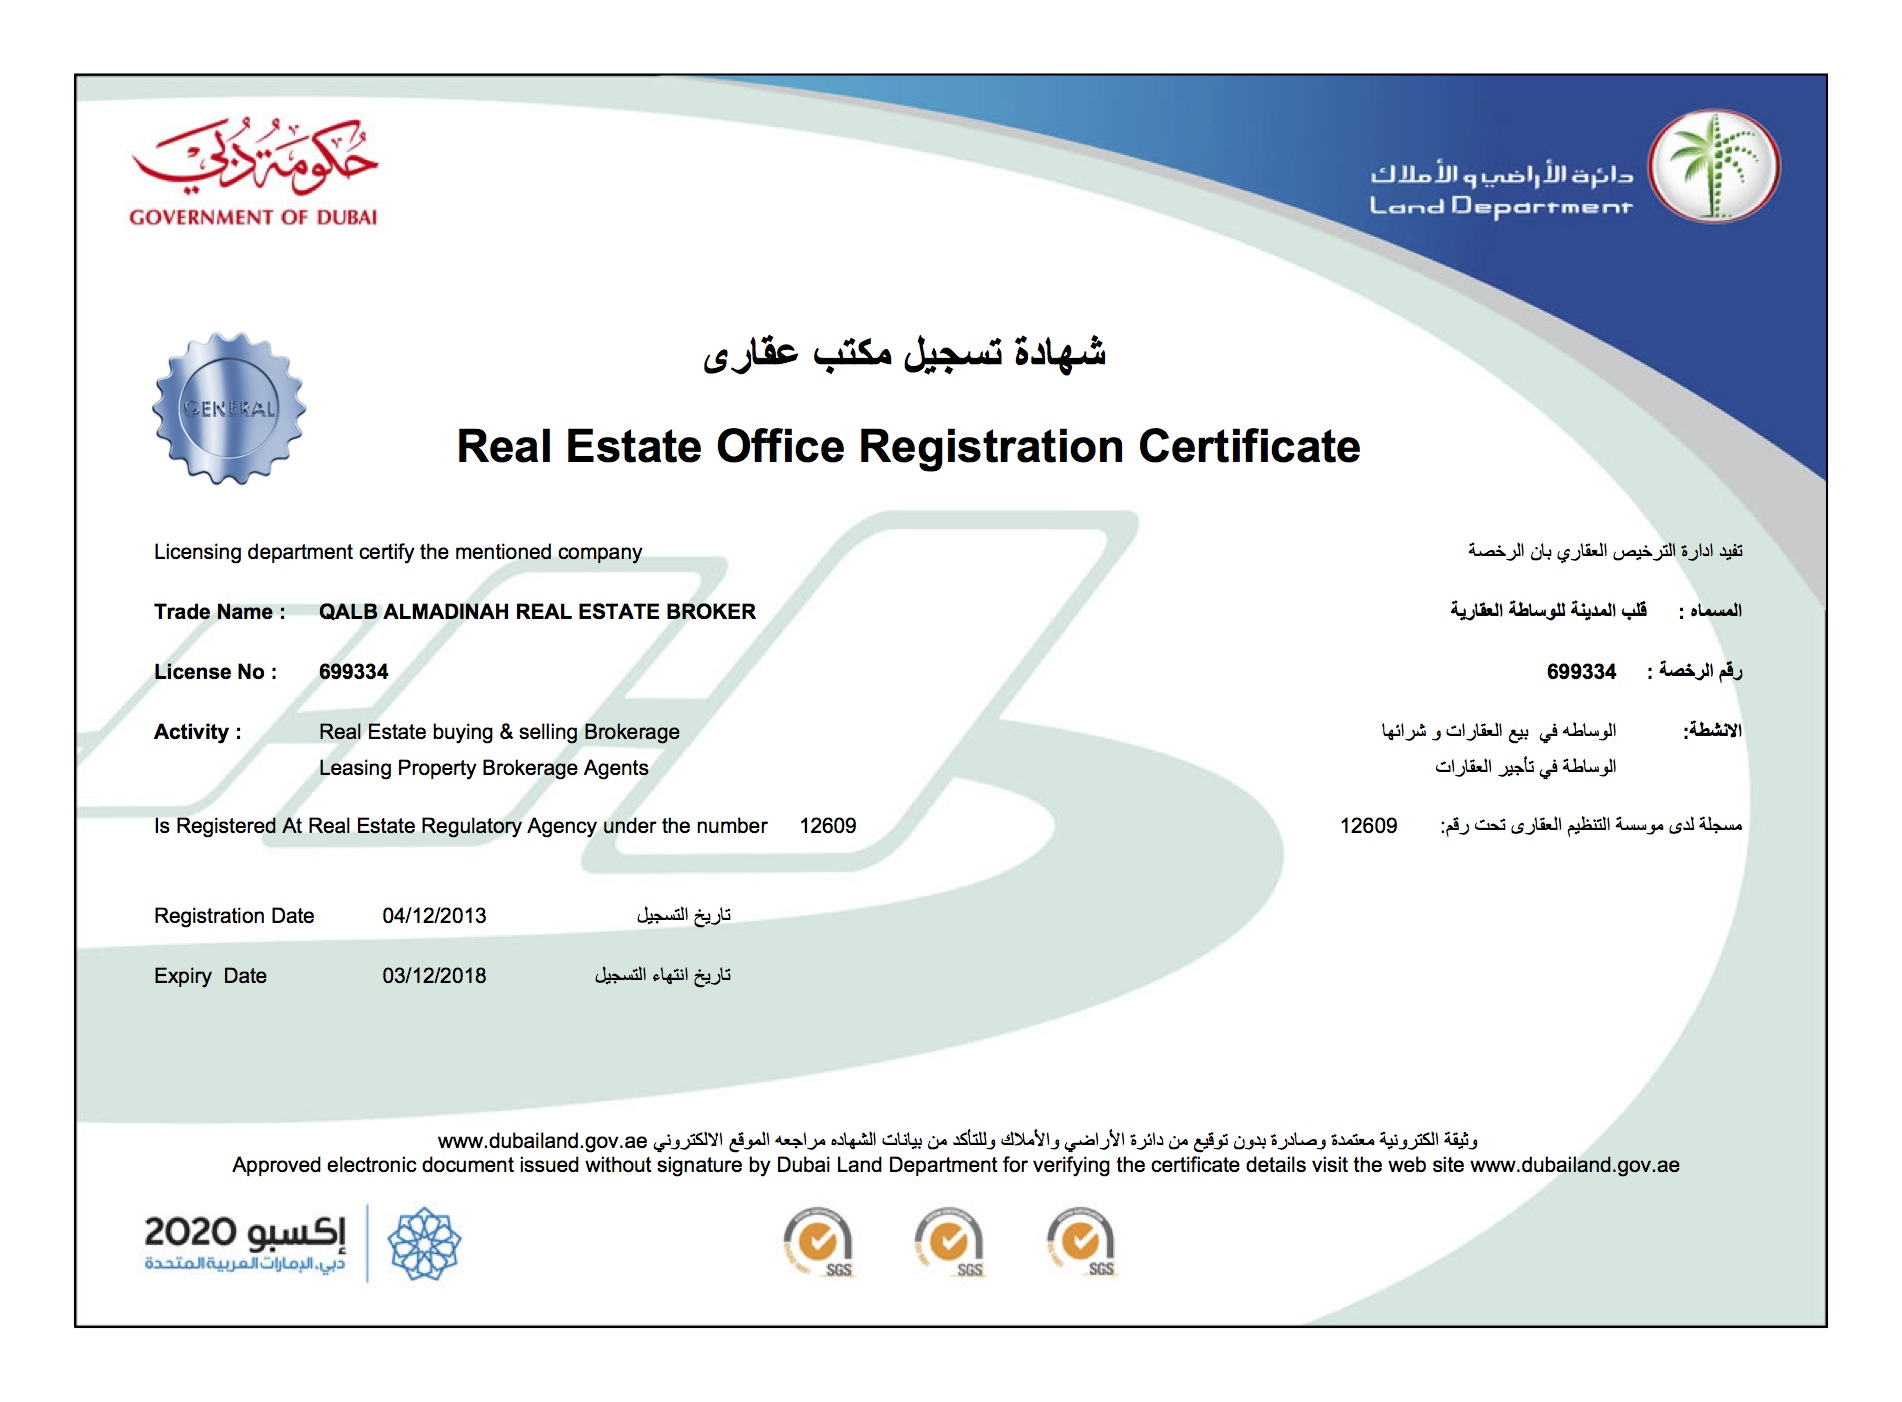 ORN QALB ALMADINAH REAL ESTATE BROKER (HEART_OF_CITY REALTY)